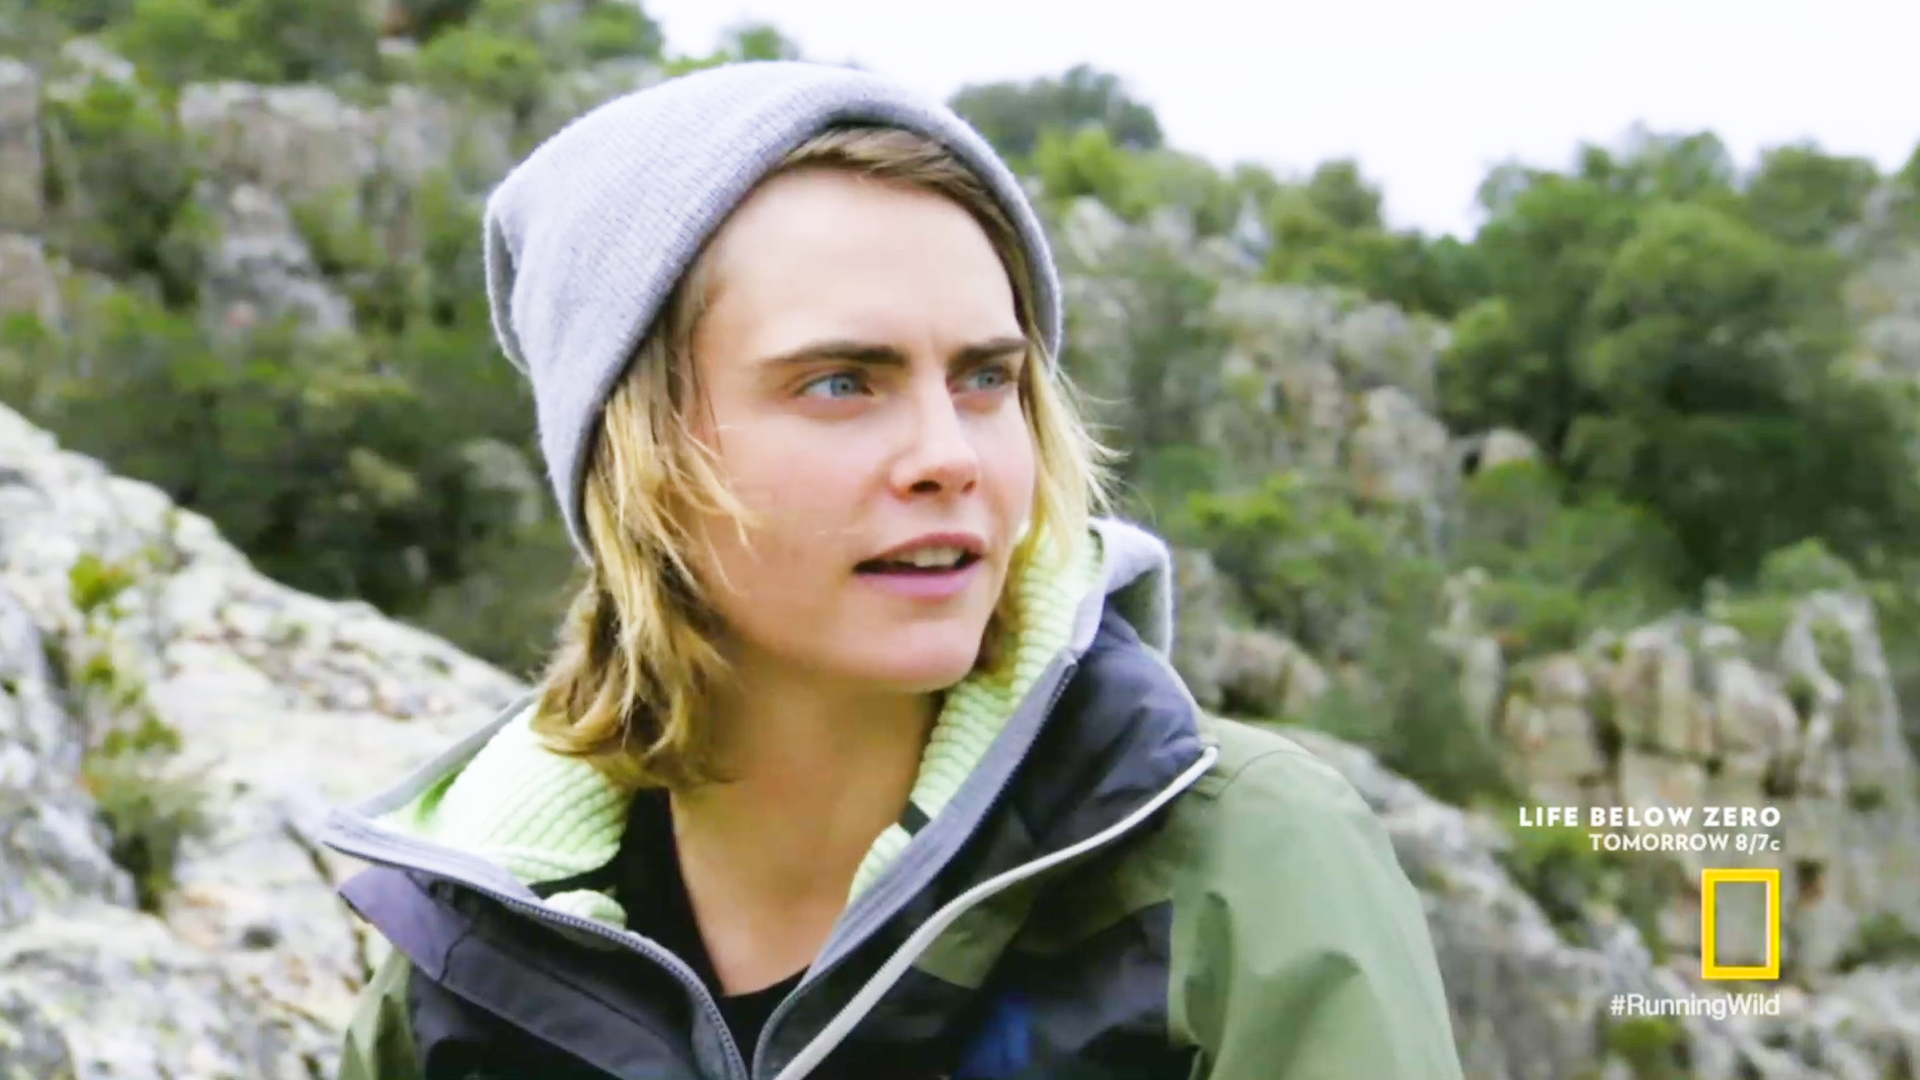 Cara Delevingne opens up about rejection early in her career: 'Like giving a self-harmer a knife'